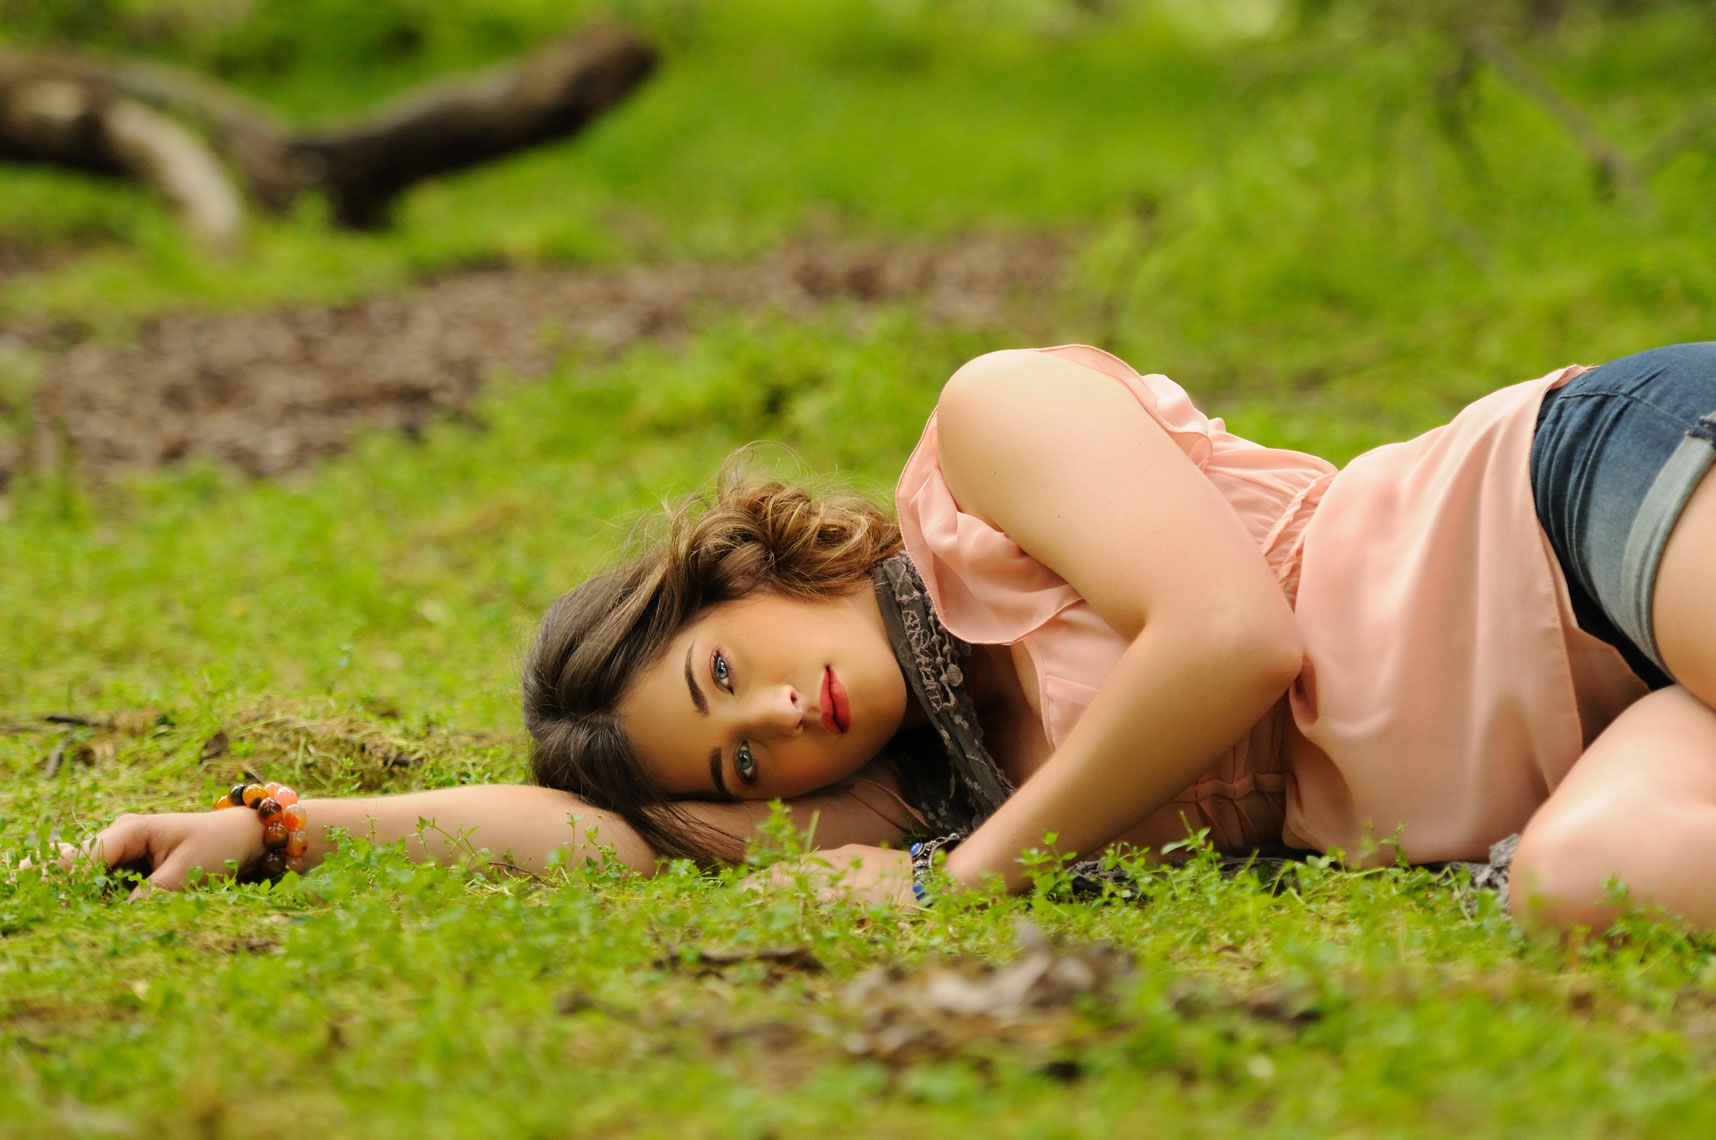 Environmental-portrait-photography-of-young-woman-lying-down-on-forest-floor